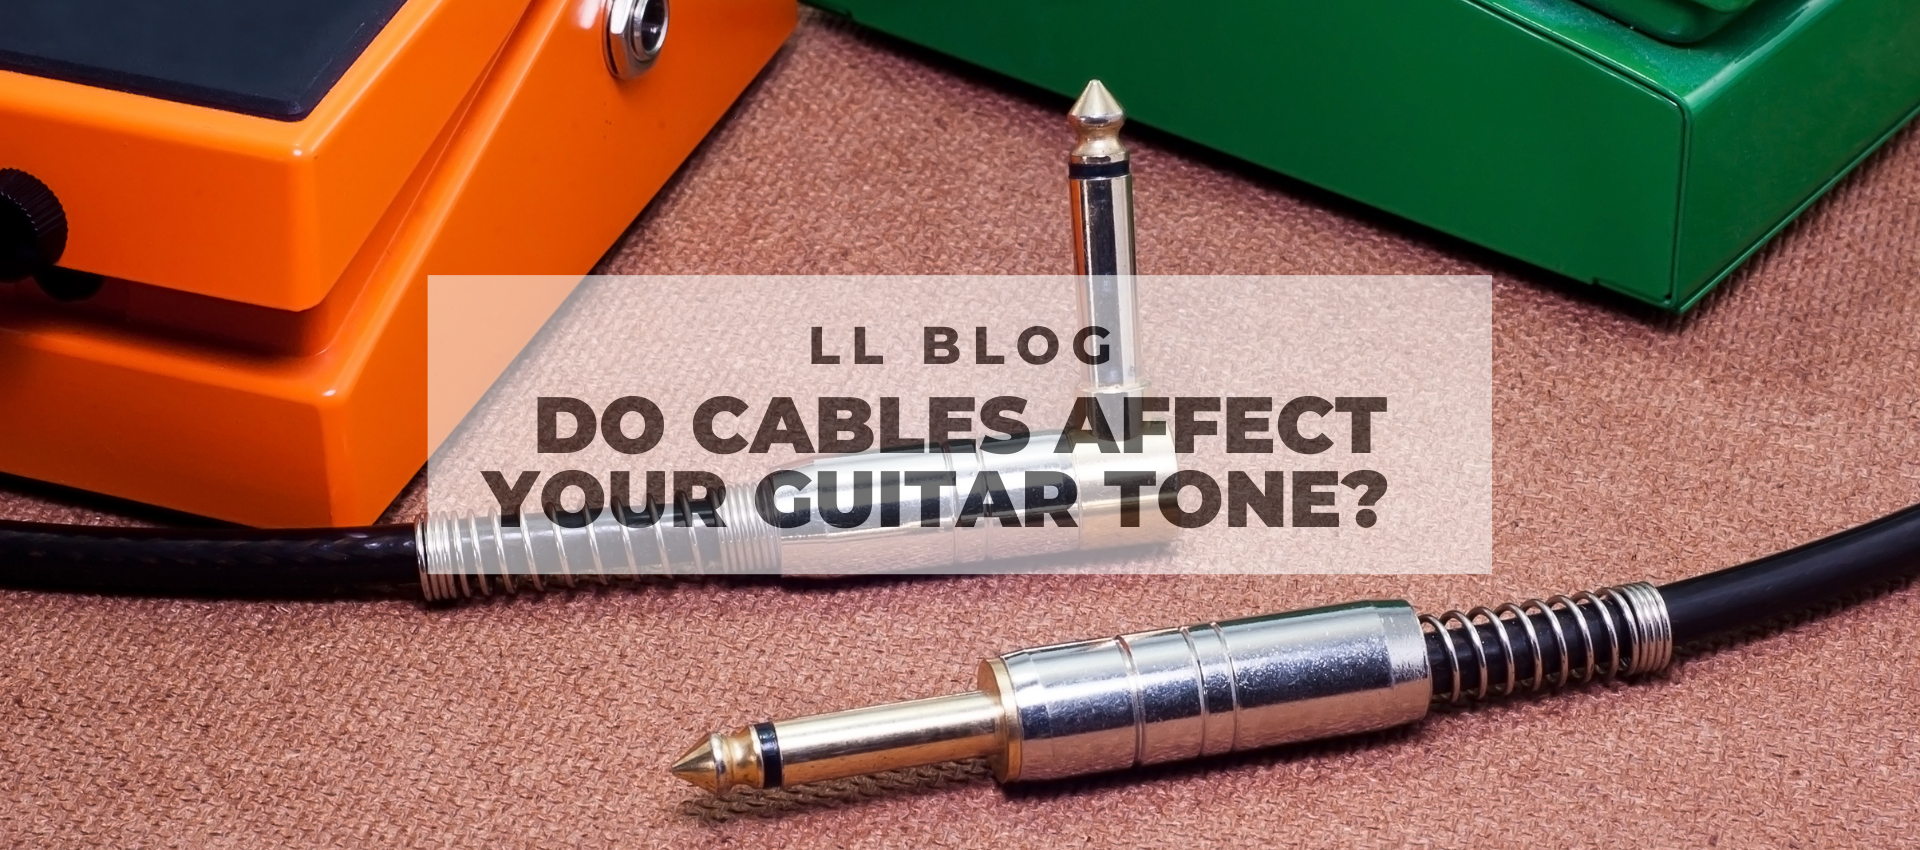 GUITAR MAINTENANCE 4 SIMPLE WAYS TO KEEP YOUR GUITAR PLAYING FIT 23